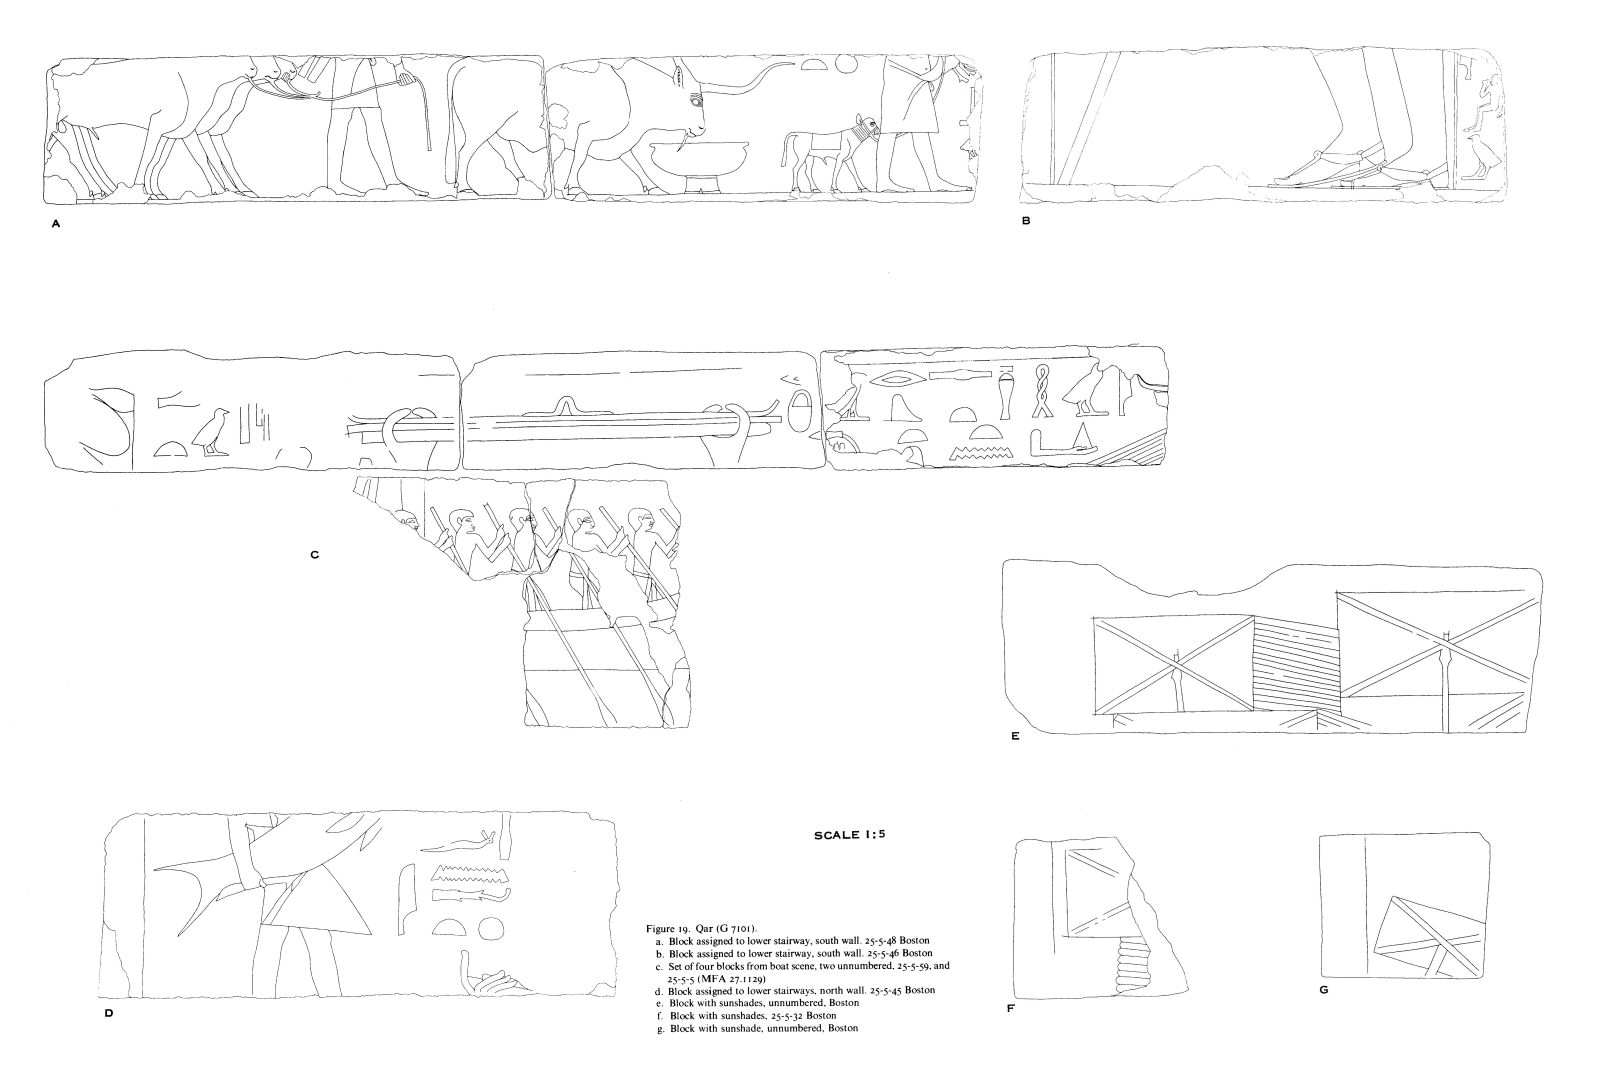 Drawings: G 7102: relief from blocks